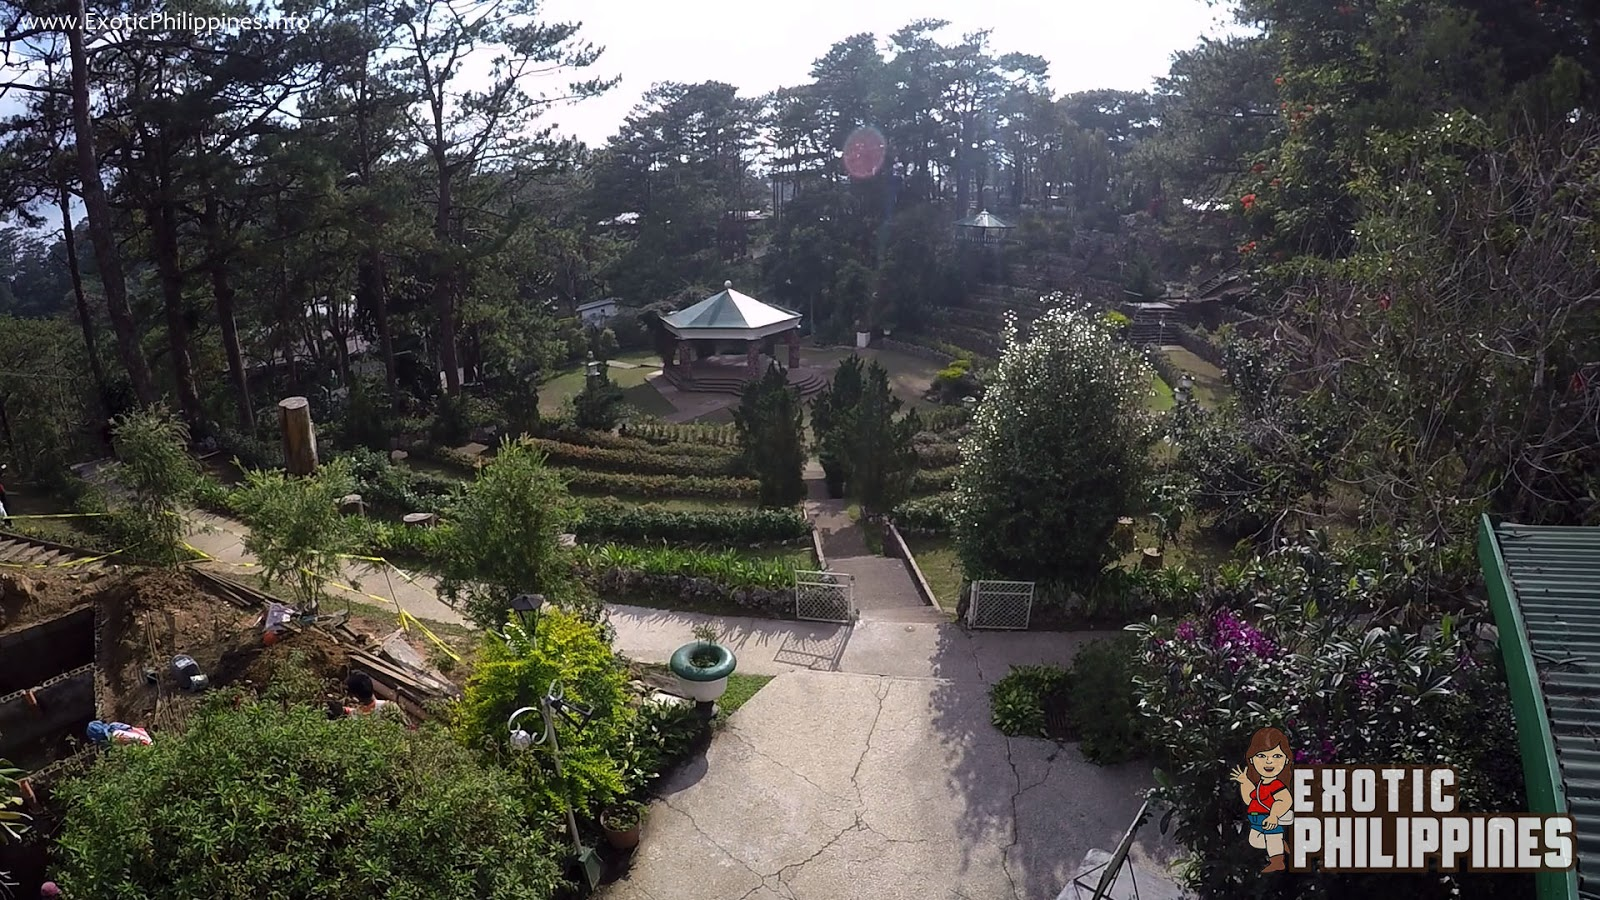 Bell House and Bell Amphitheater at Camp John Hay